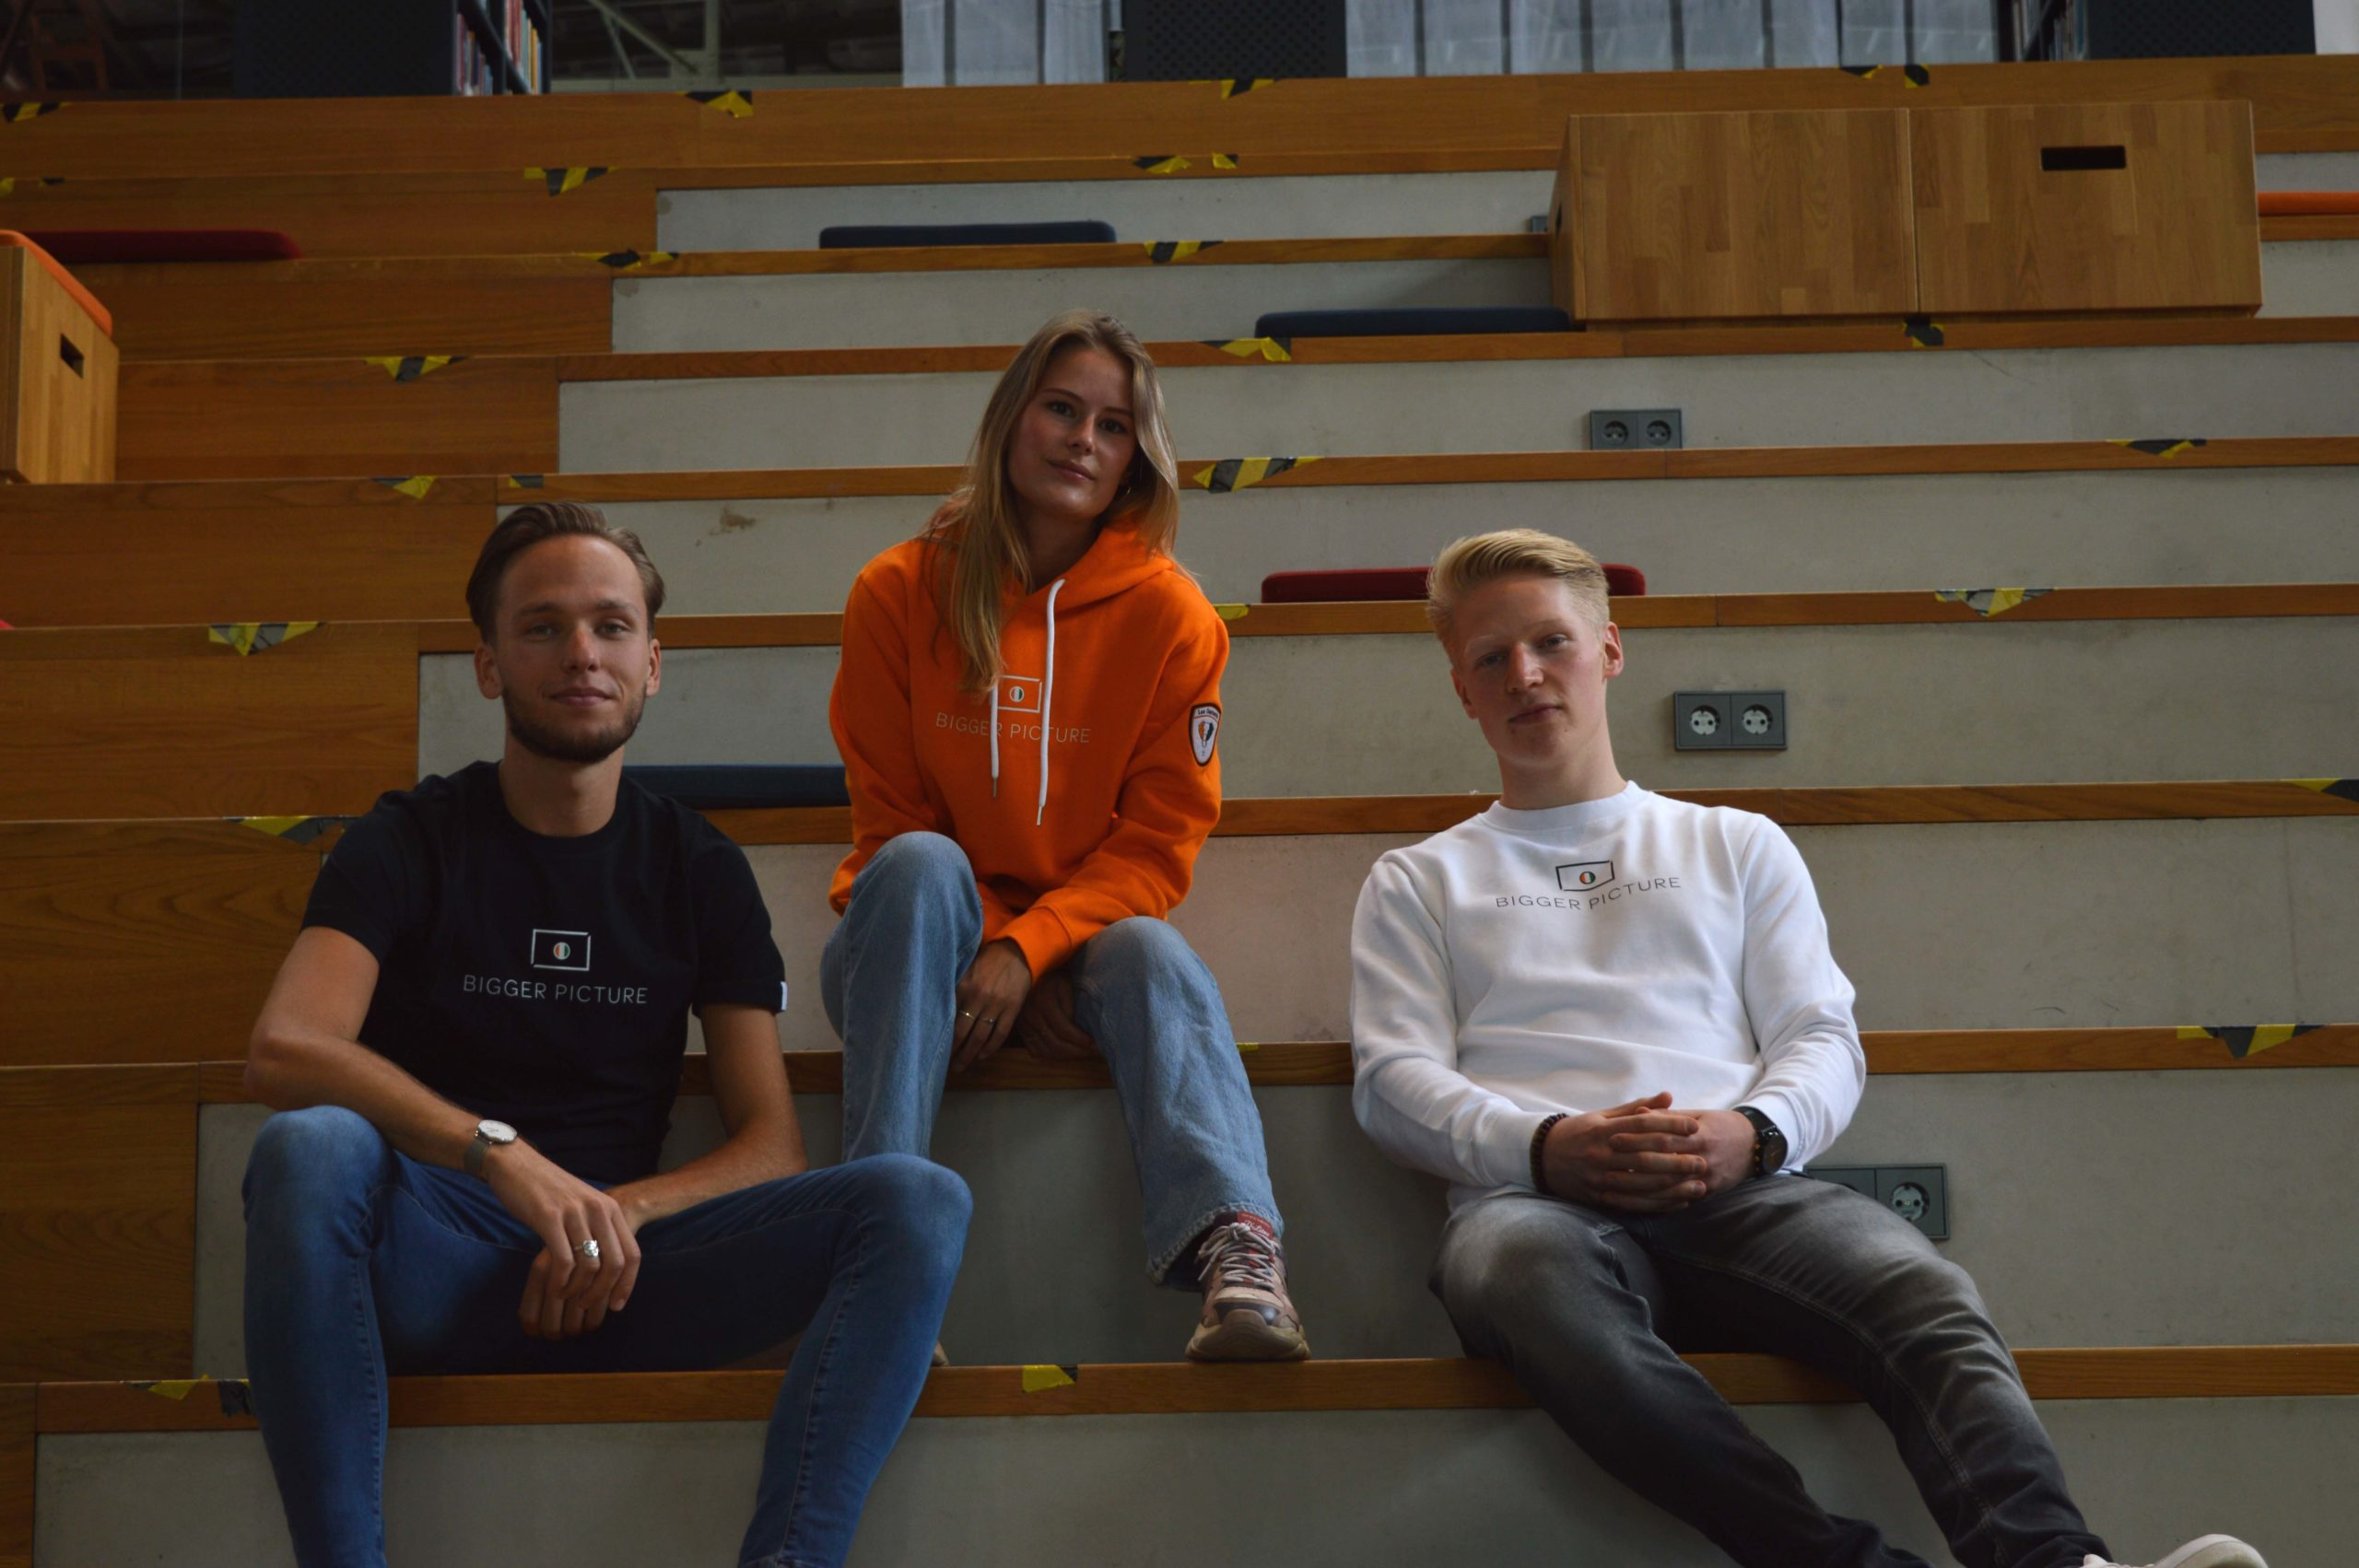 Freek, Pleun and Thijmen sitting on the stairs in the lochal in Tilburg for the first ever photoshoot of Dutch sustainable clothing brand Bigger Picture Clothing.